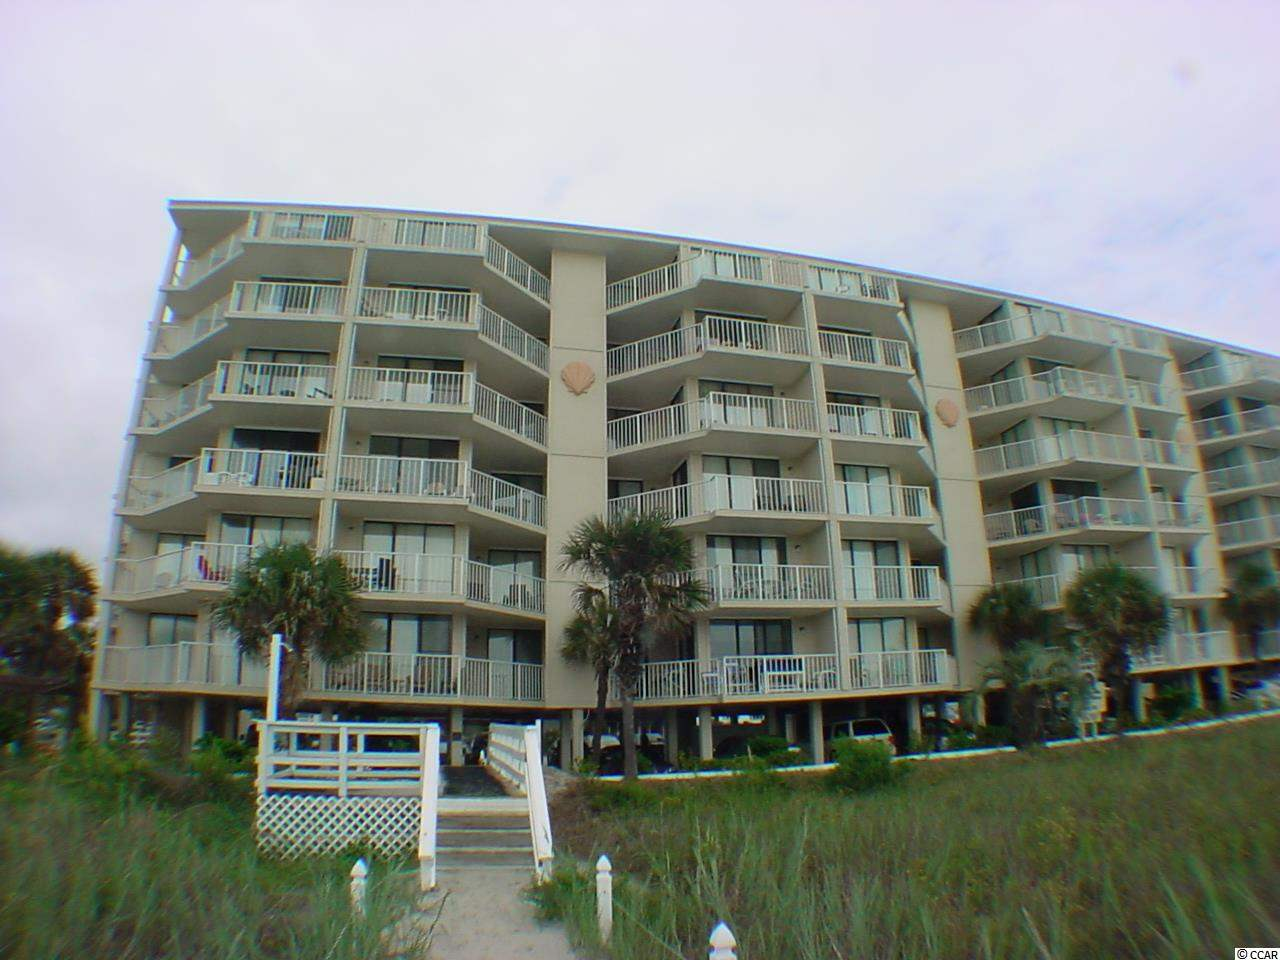 Condos for sale real estate carolina forest for sale - 5 bedroom condos in myrtle beach sc ...